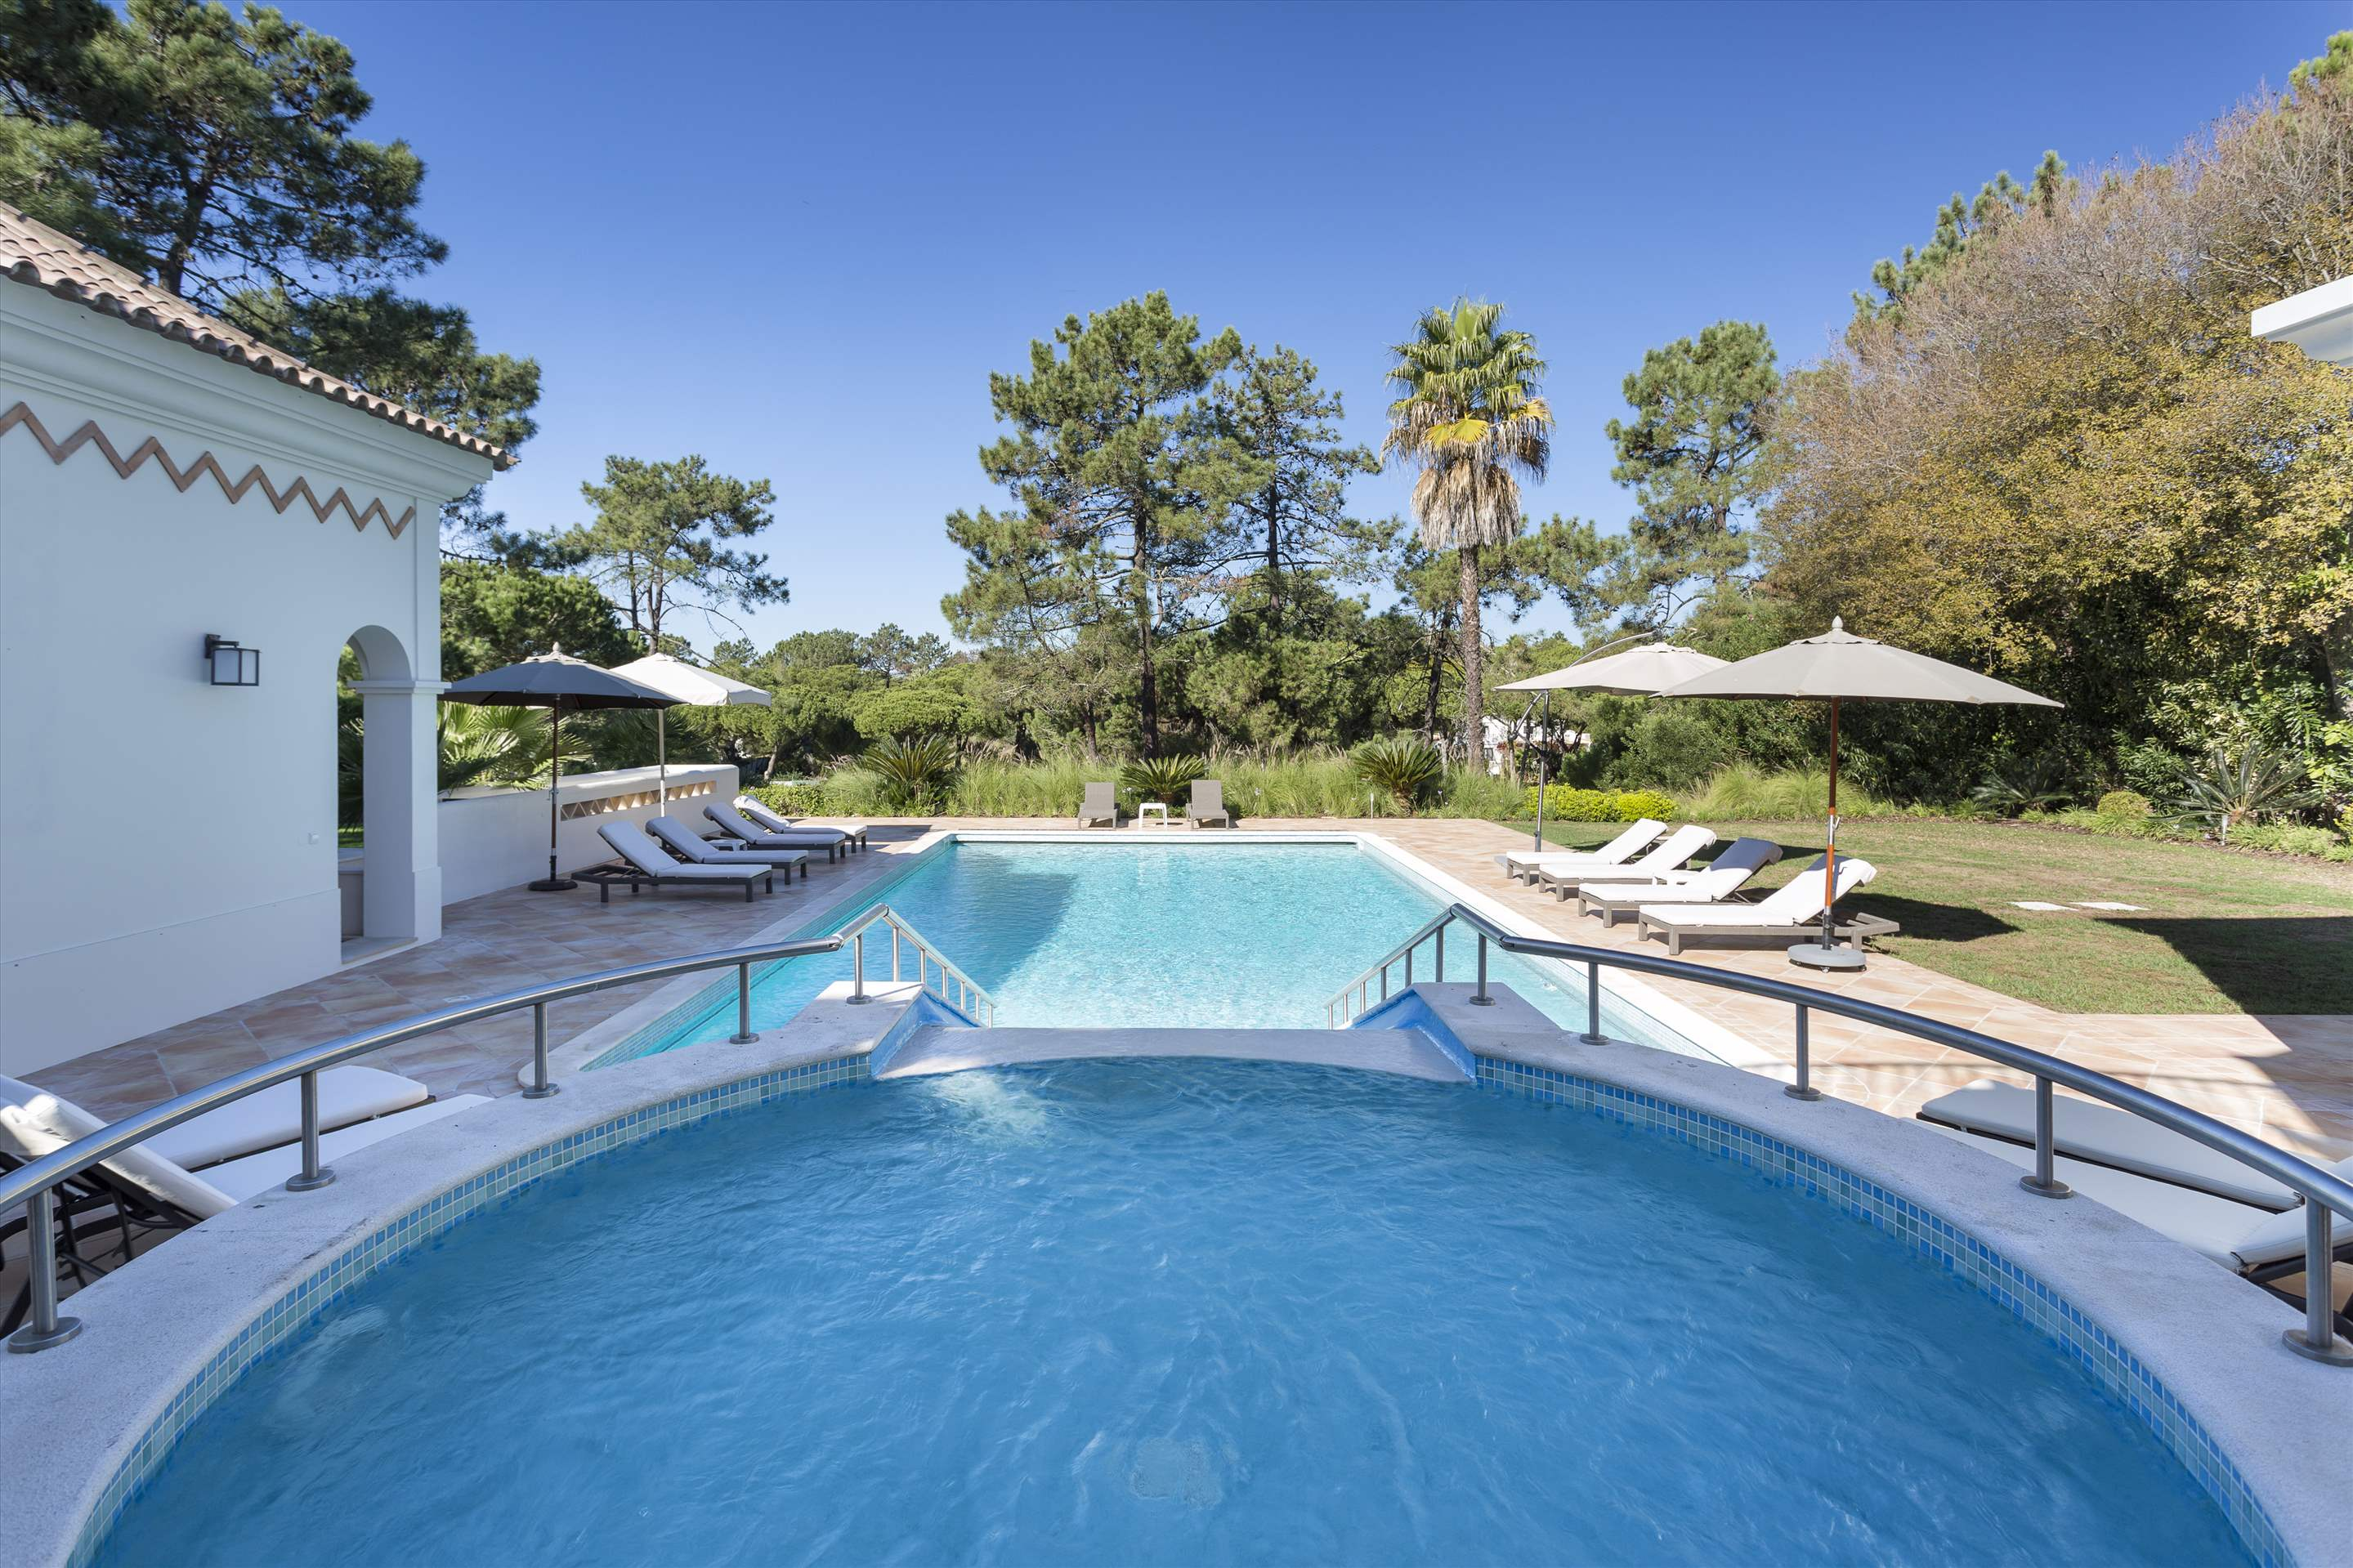 Villa Lantana 2, Main house & Annexe, 6 bedrooms, 6 bedroom villa in Quinta do Lago, Algarve Photo #13